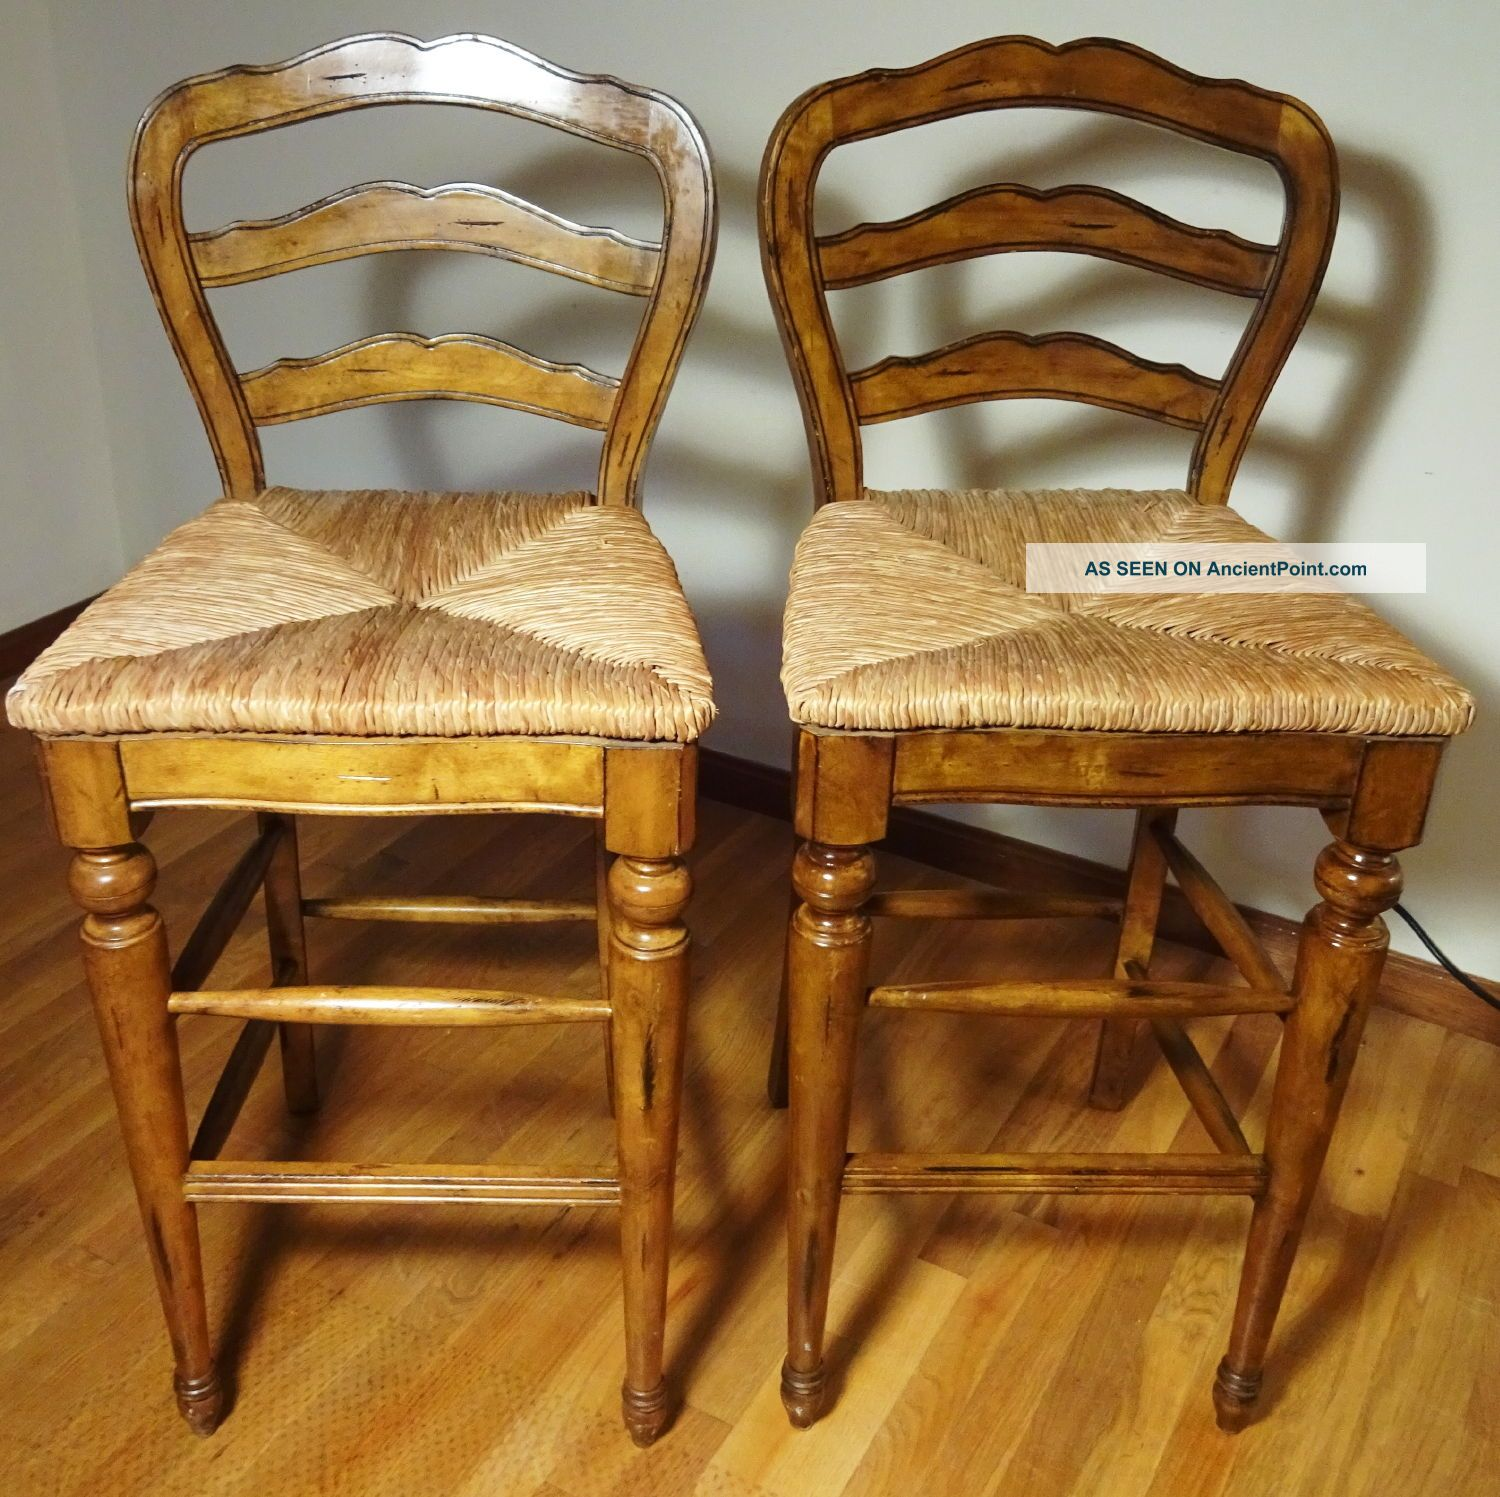 Very Impressive portraiture of French Country Counter Bar Stools Rush Seats Avignon Provincial  with #B1871A color and 1500x1497 pixels